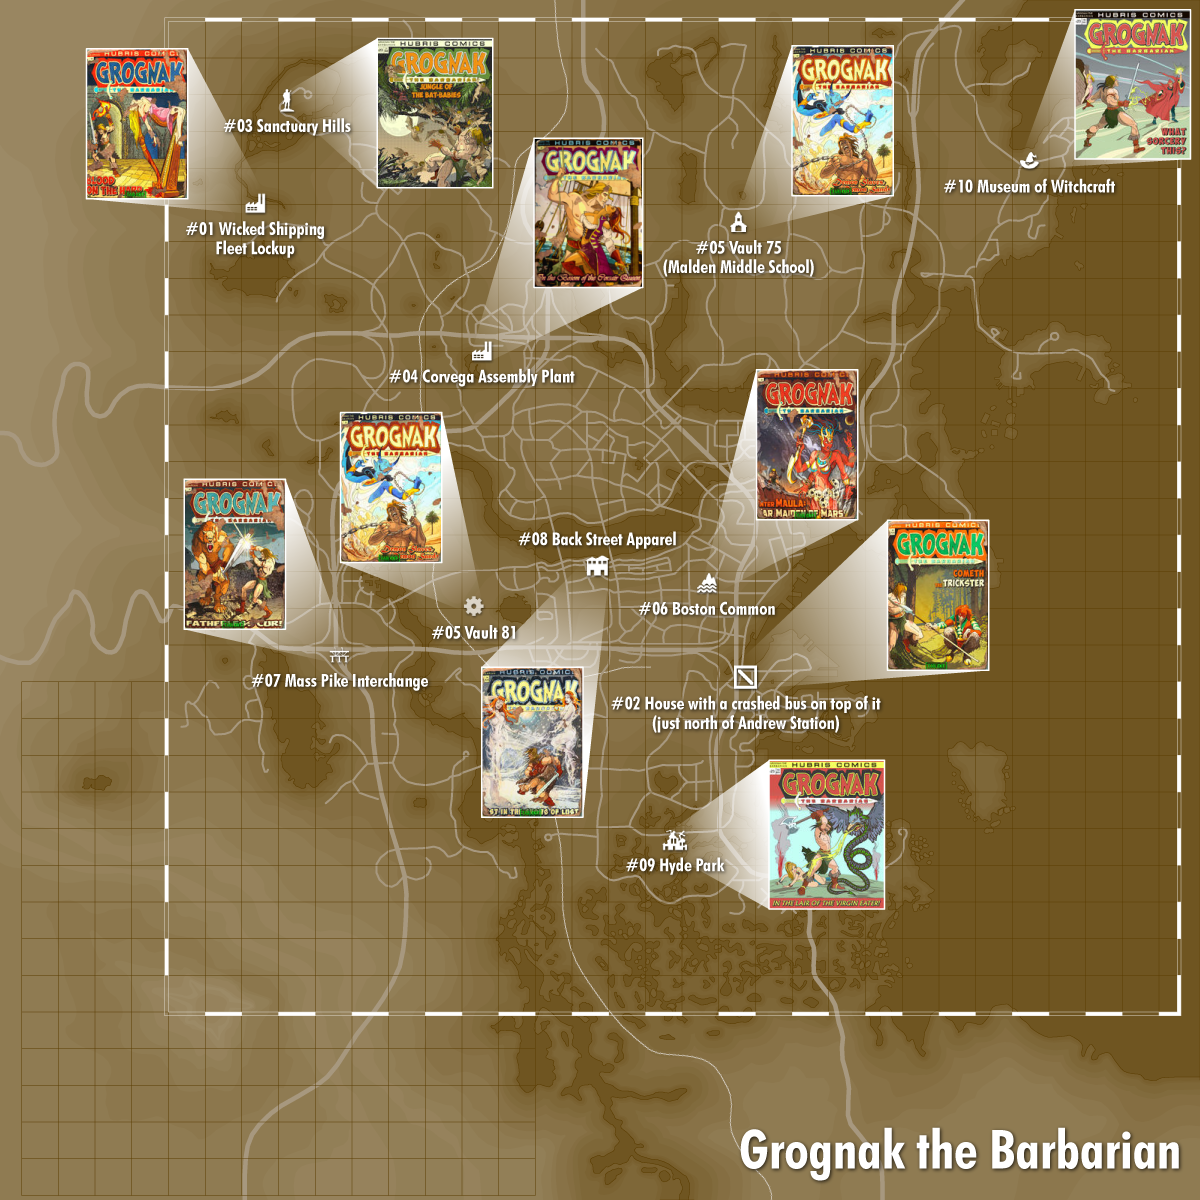 Grognak The Barbarian Fallout Fallout Wiki FANDOM Powered - Fallout game map of us